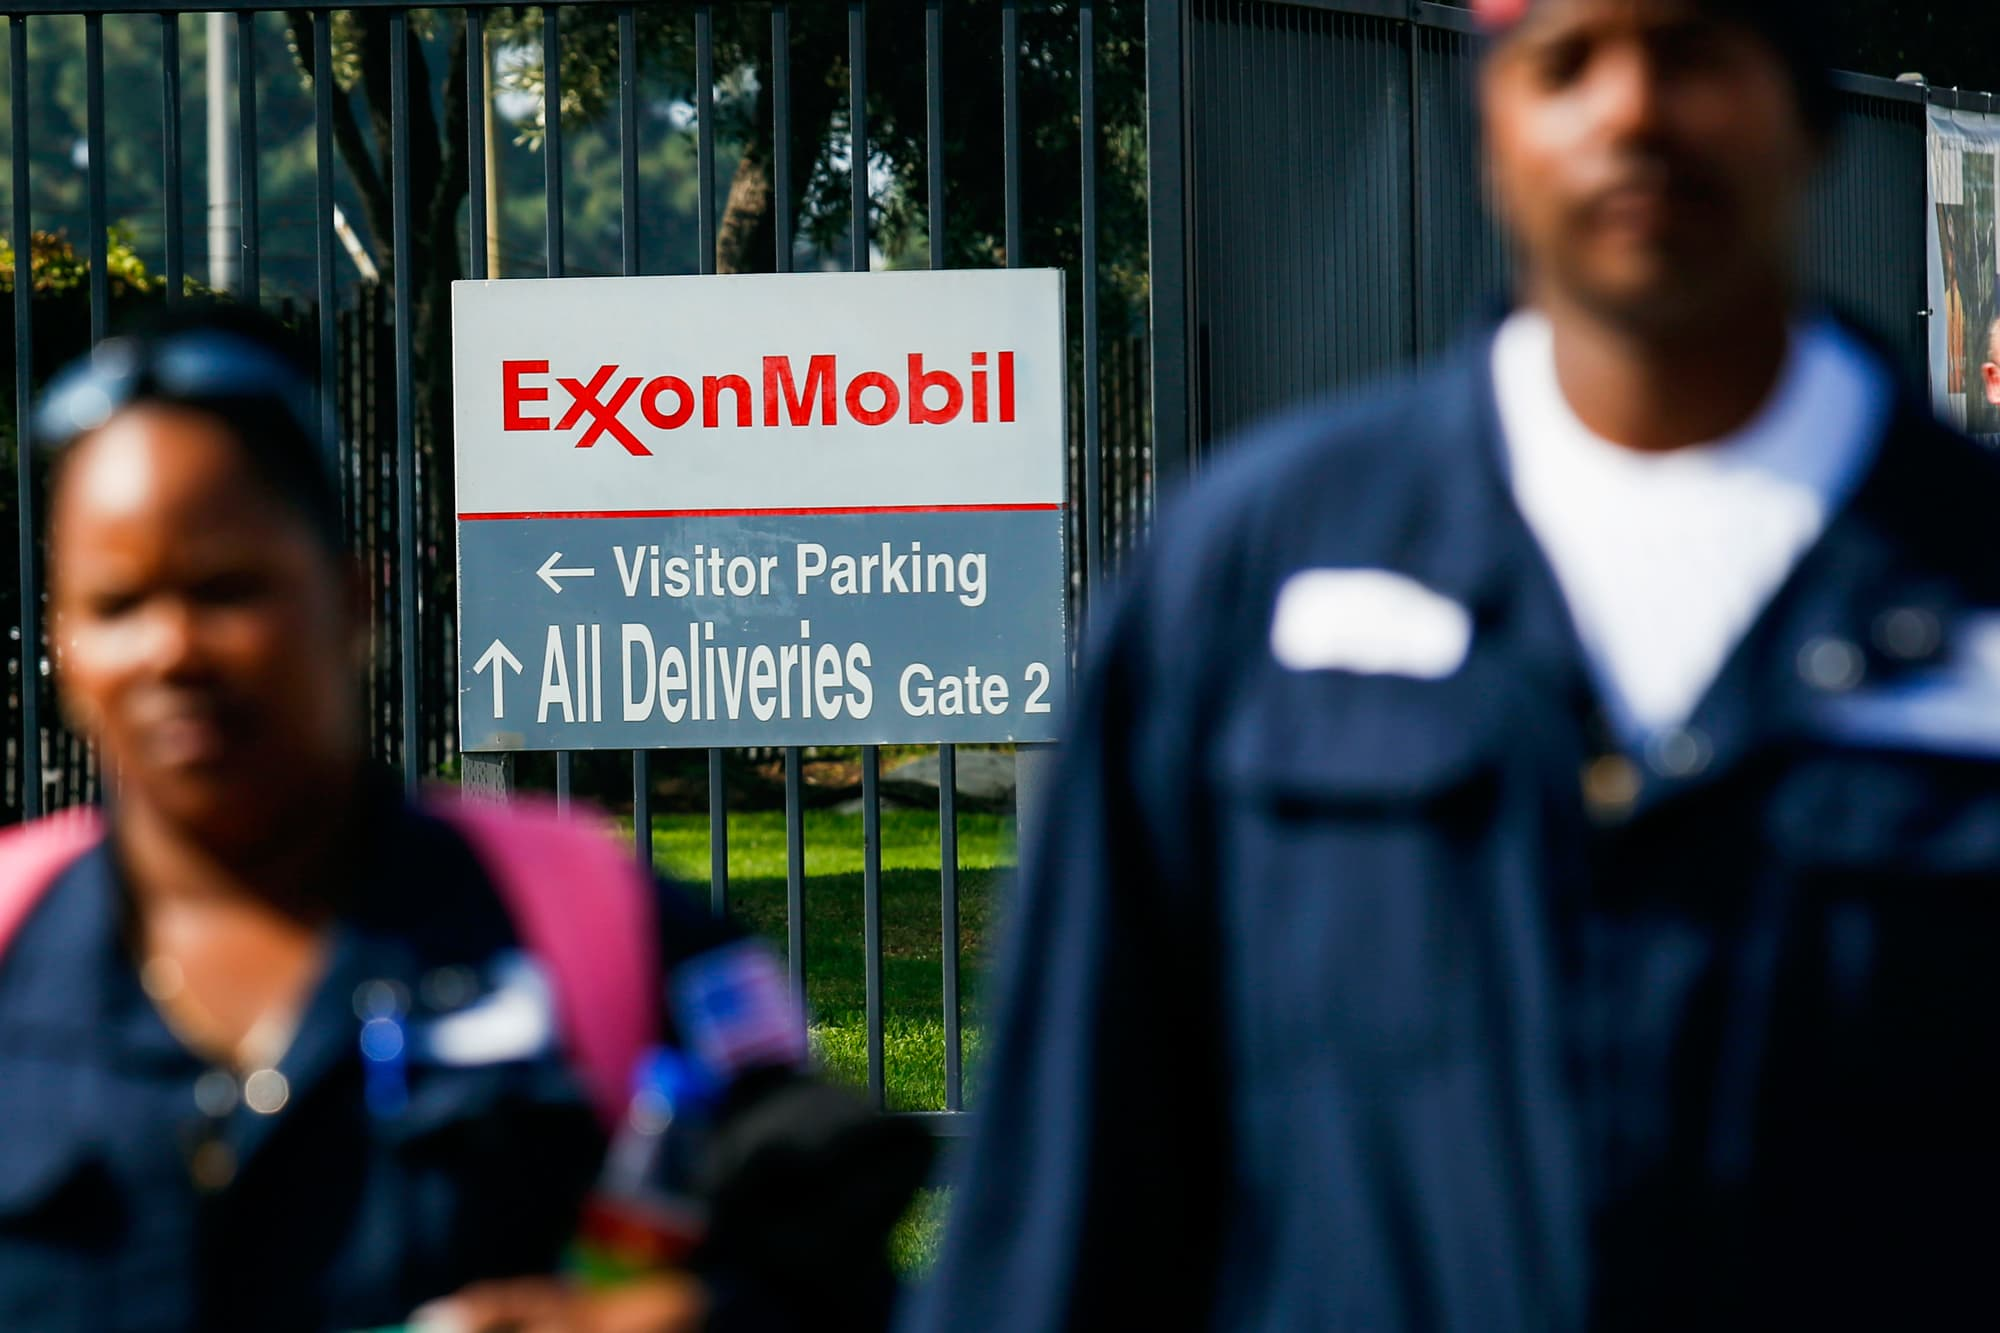 Exxon mobil shares fall as profits double but fall short expectations buycottarizona Gallery